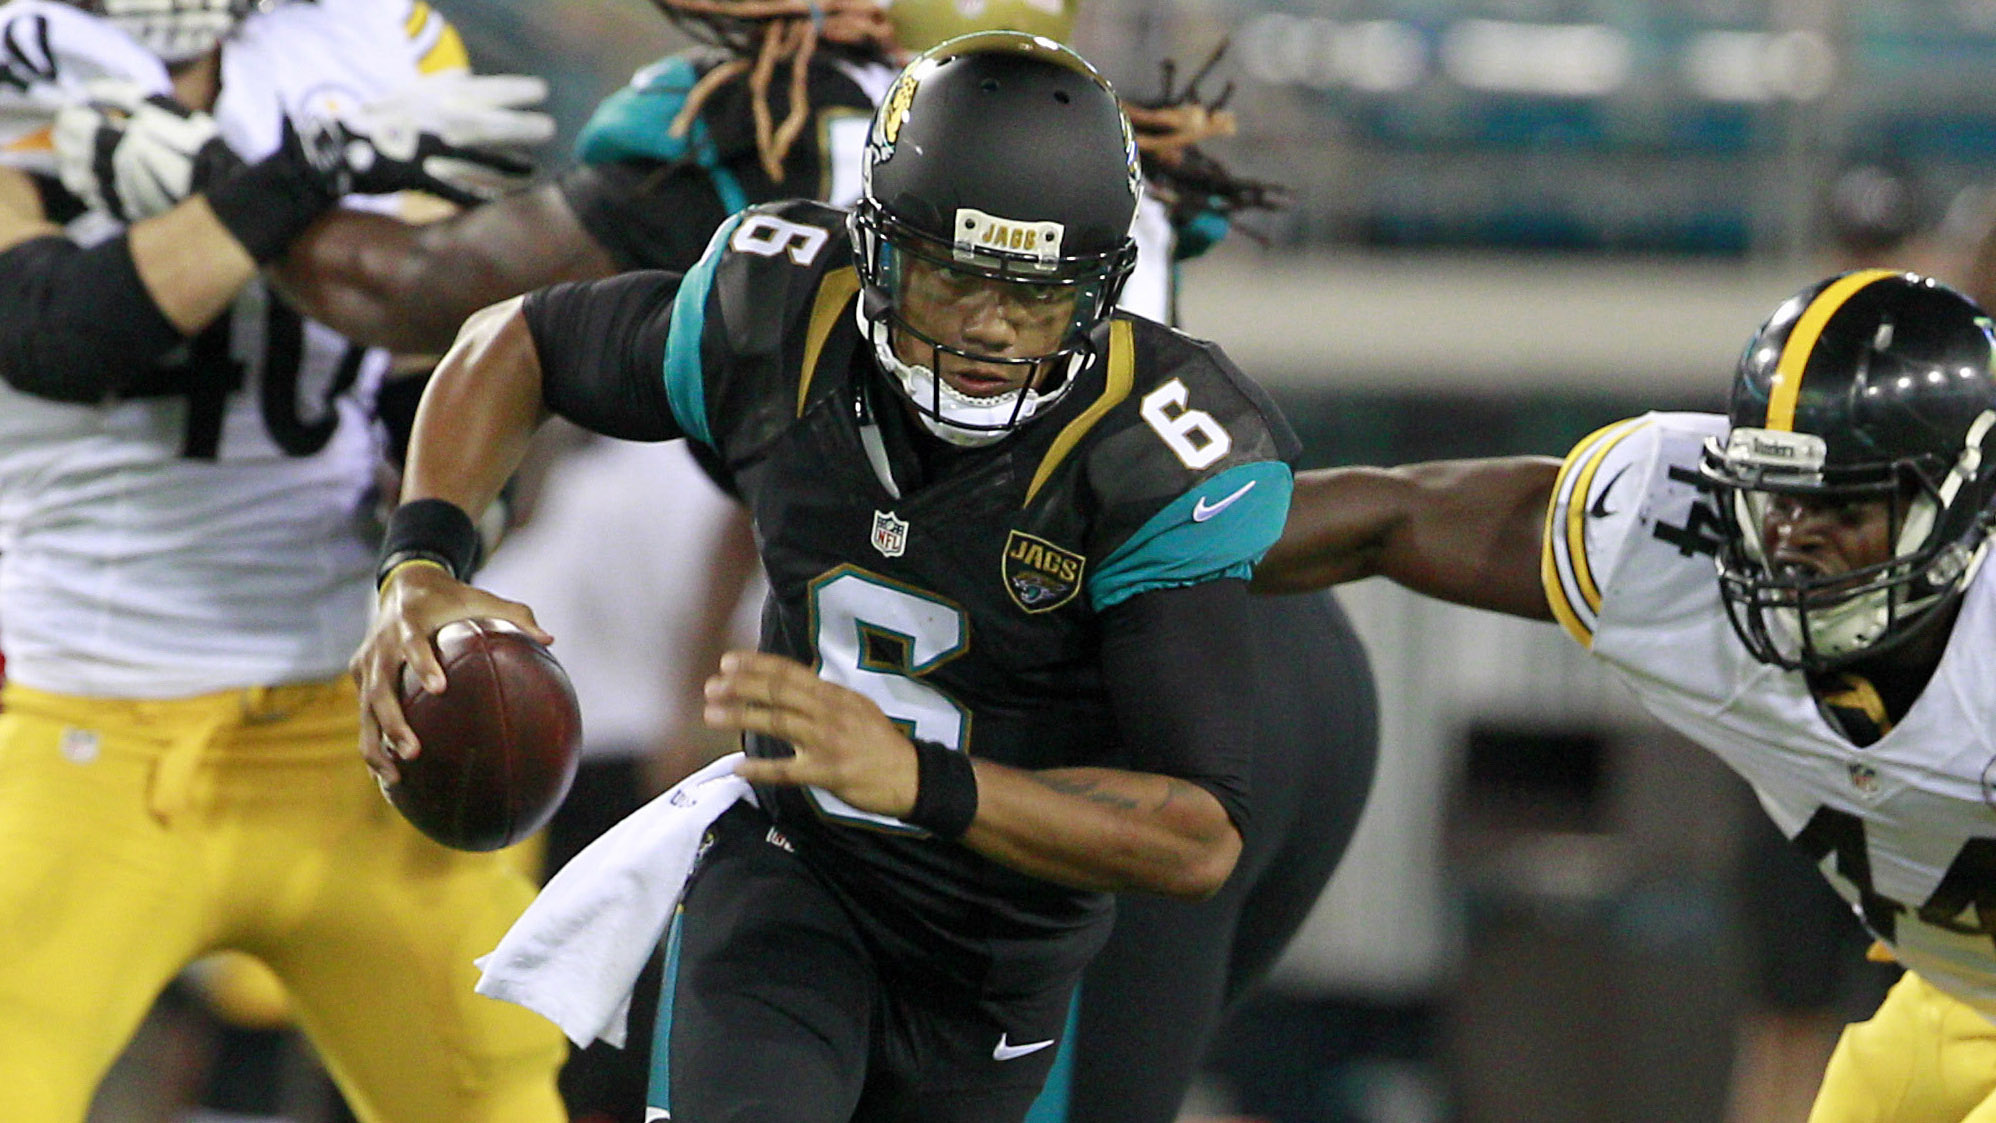 Bortles sharp, Thomas injured in Jags preseason win vs. Steelers